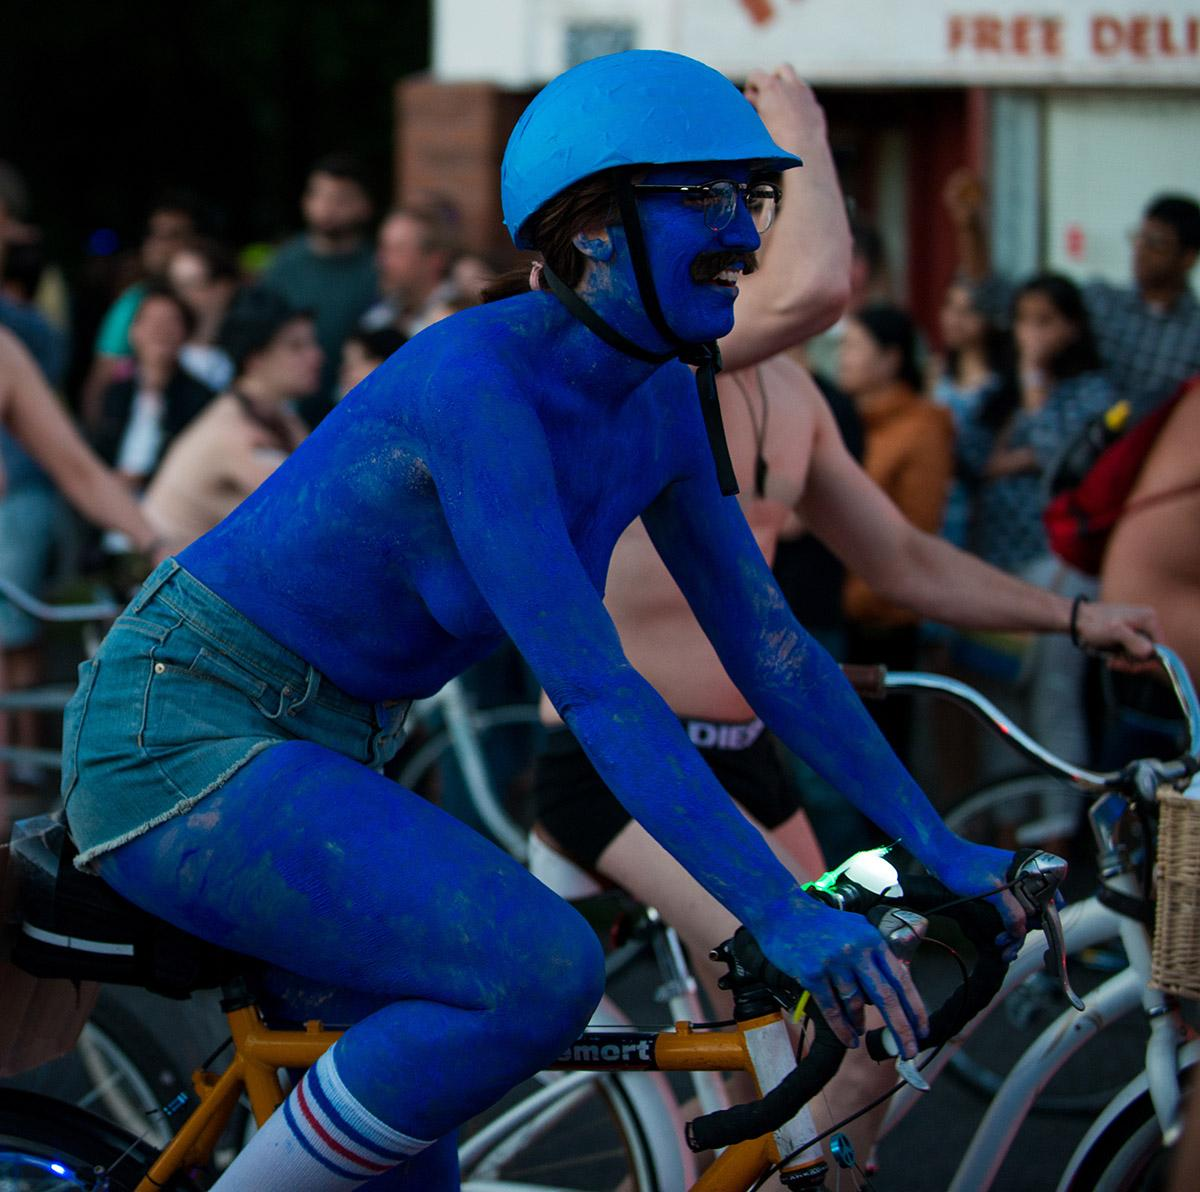 Thousands of bicyclists bared all for the World Naked Bike Ride on Saturday to highlight the problems of global oil dependency and the vulnerability of riders worldwide. The route rolled through Southeast Portland from Mt. Scott Park to the White Owl Social Club. (June 25 2016 - Photo by Tristan Fortsch)